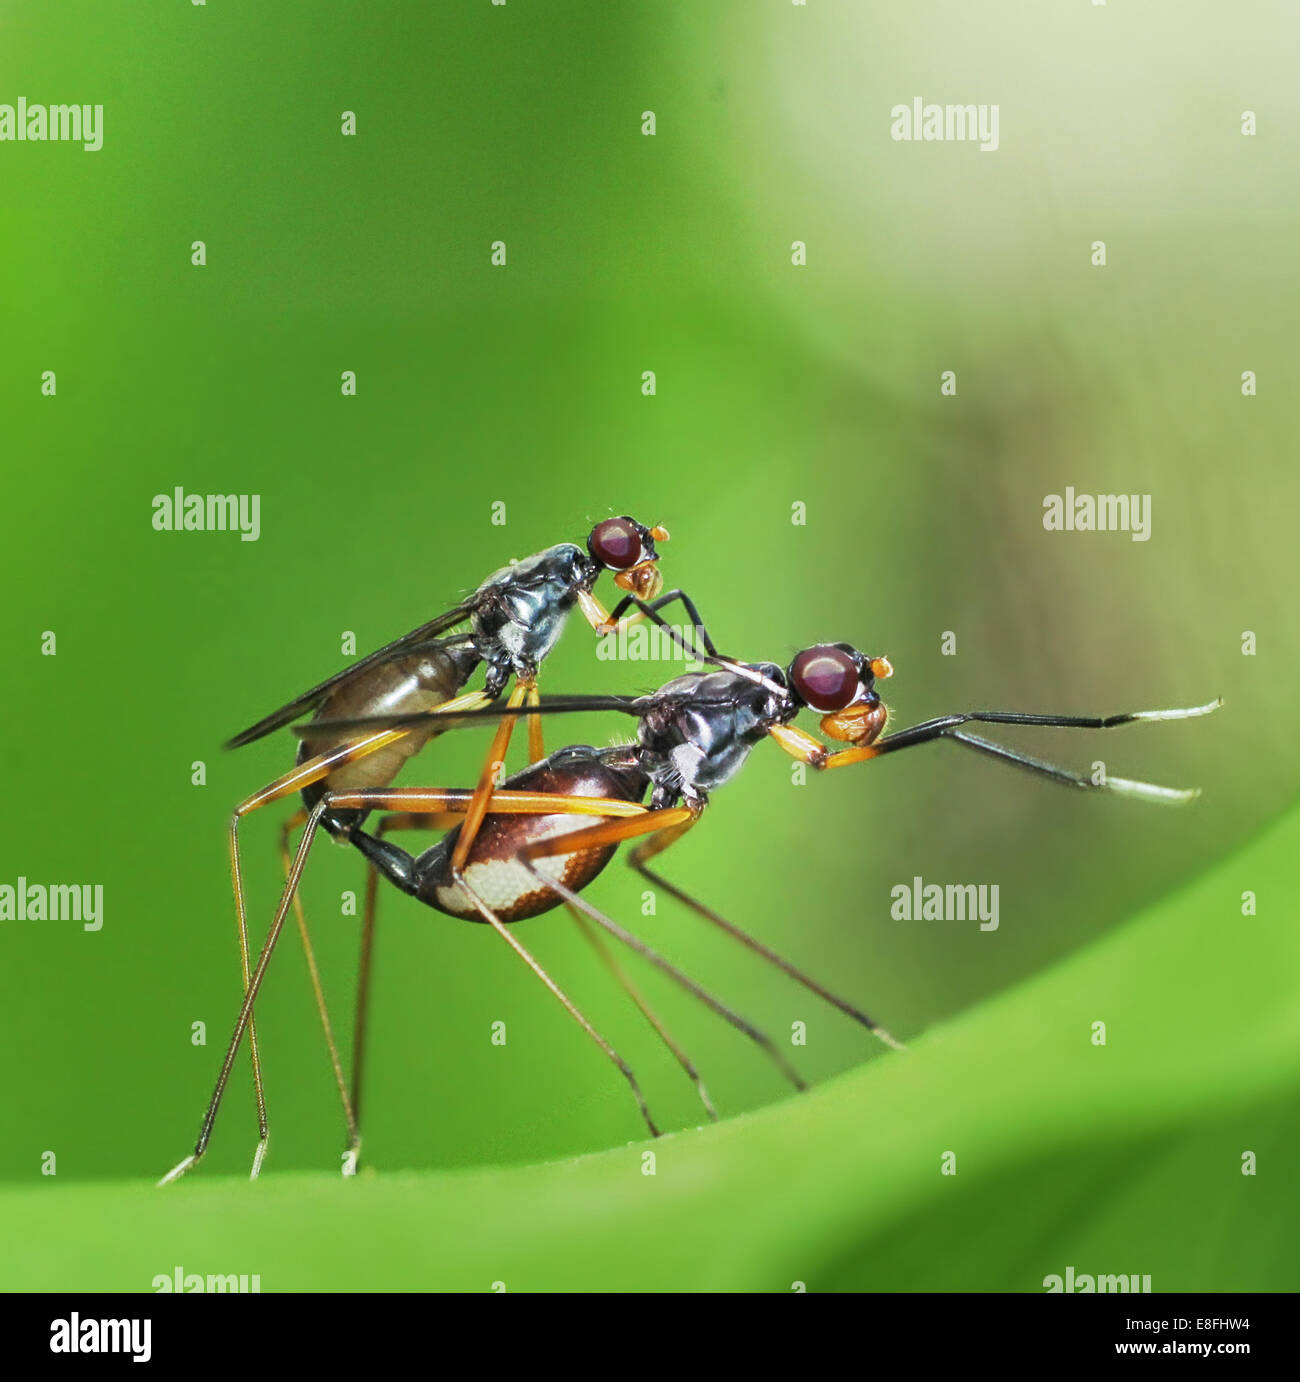 Accouplement des insectes Photo Stock